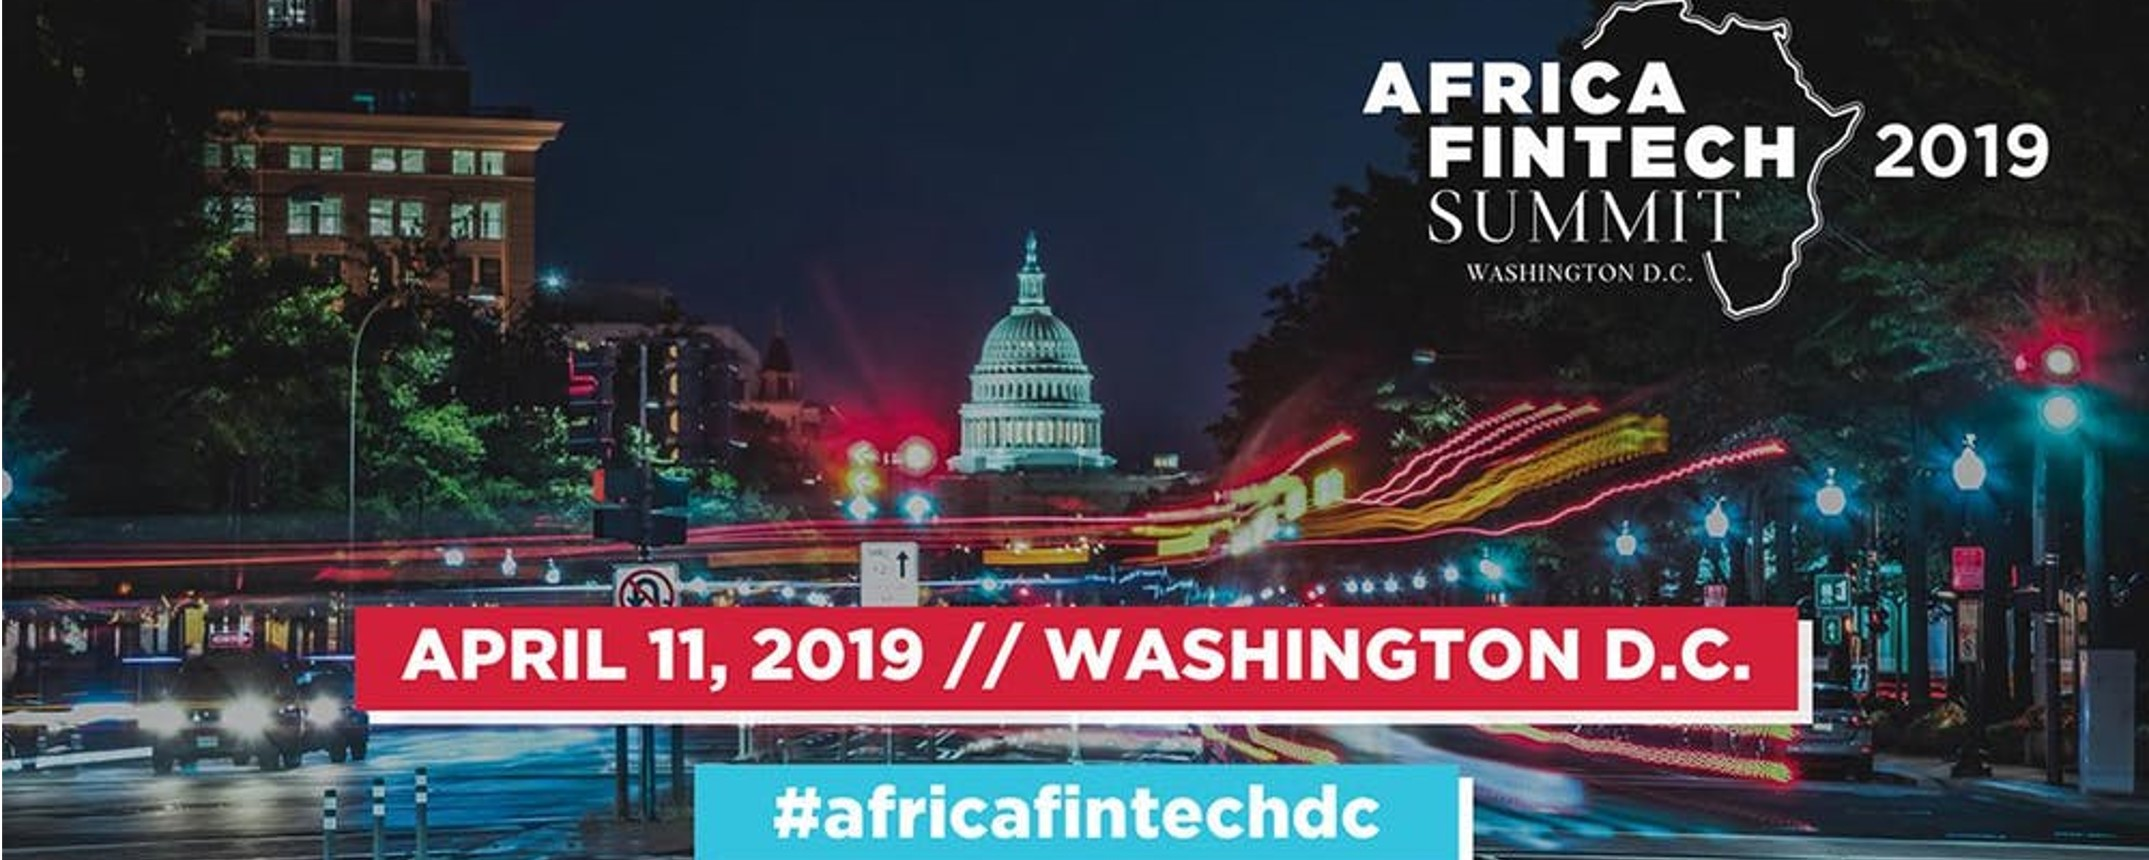 Africa Fintech Summit - Africa Fintech Summit 2019 Movemeback African event cover image